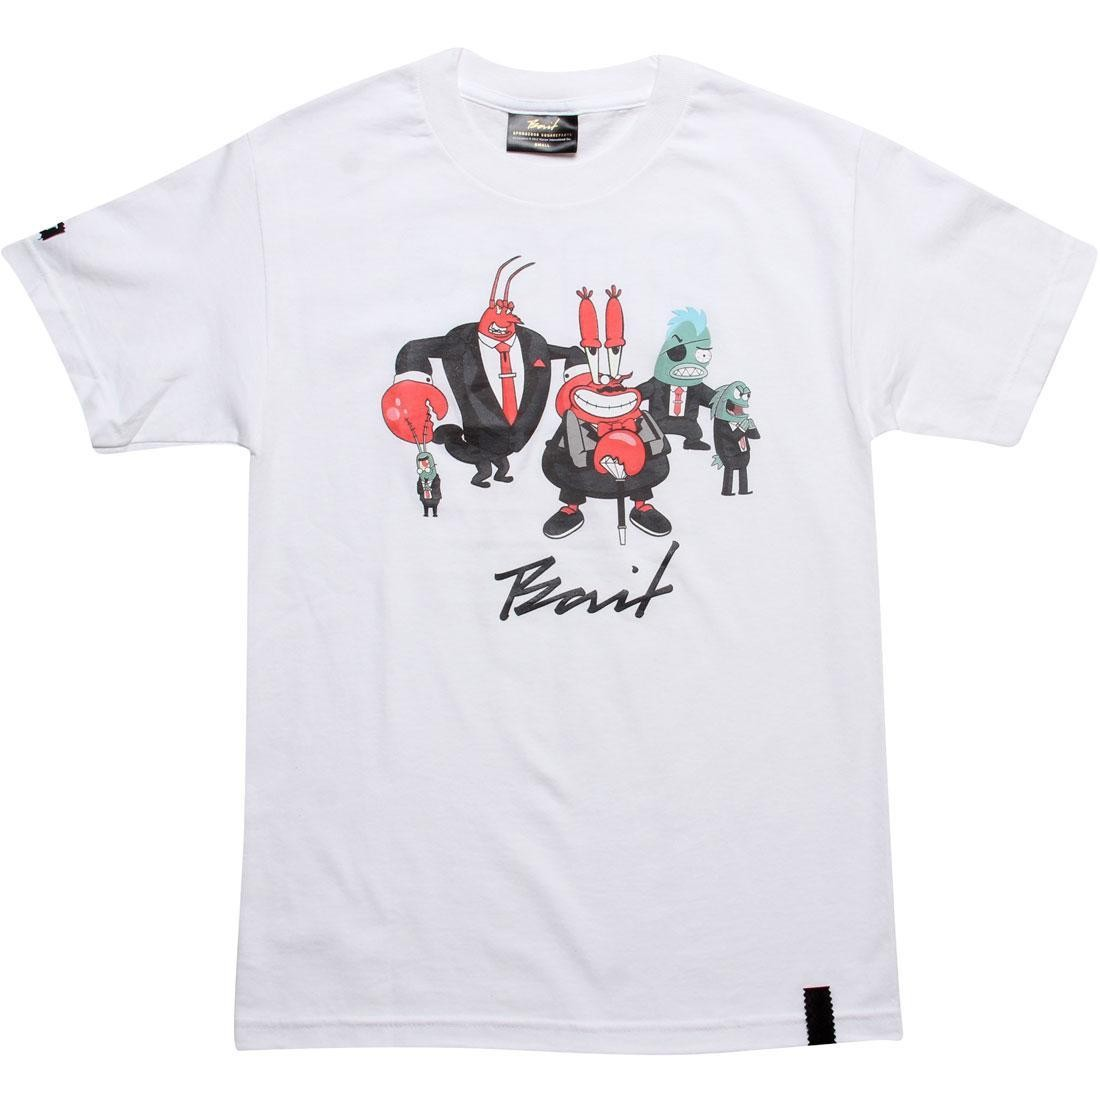 BAIT x SpongeBob Mr Krabs Tee (white)